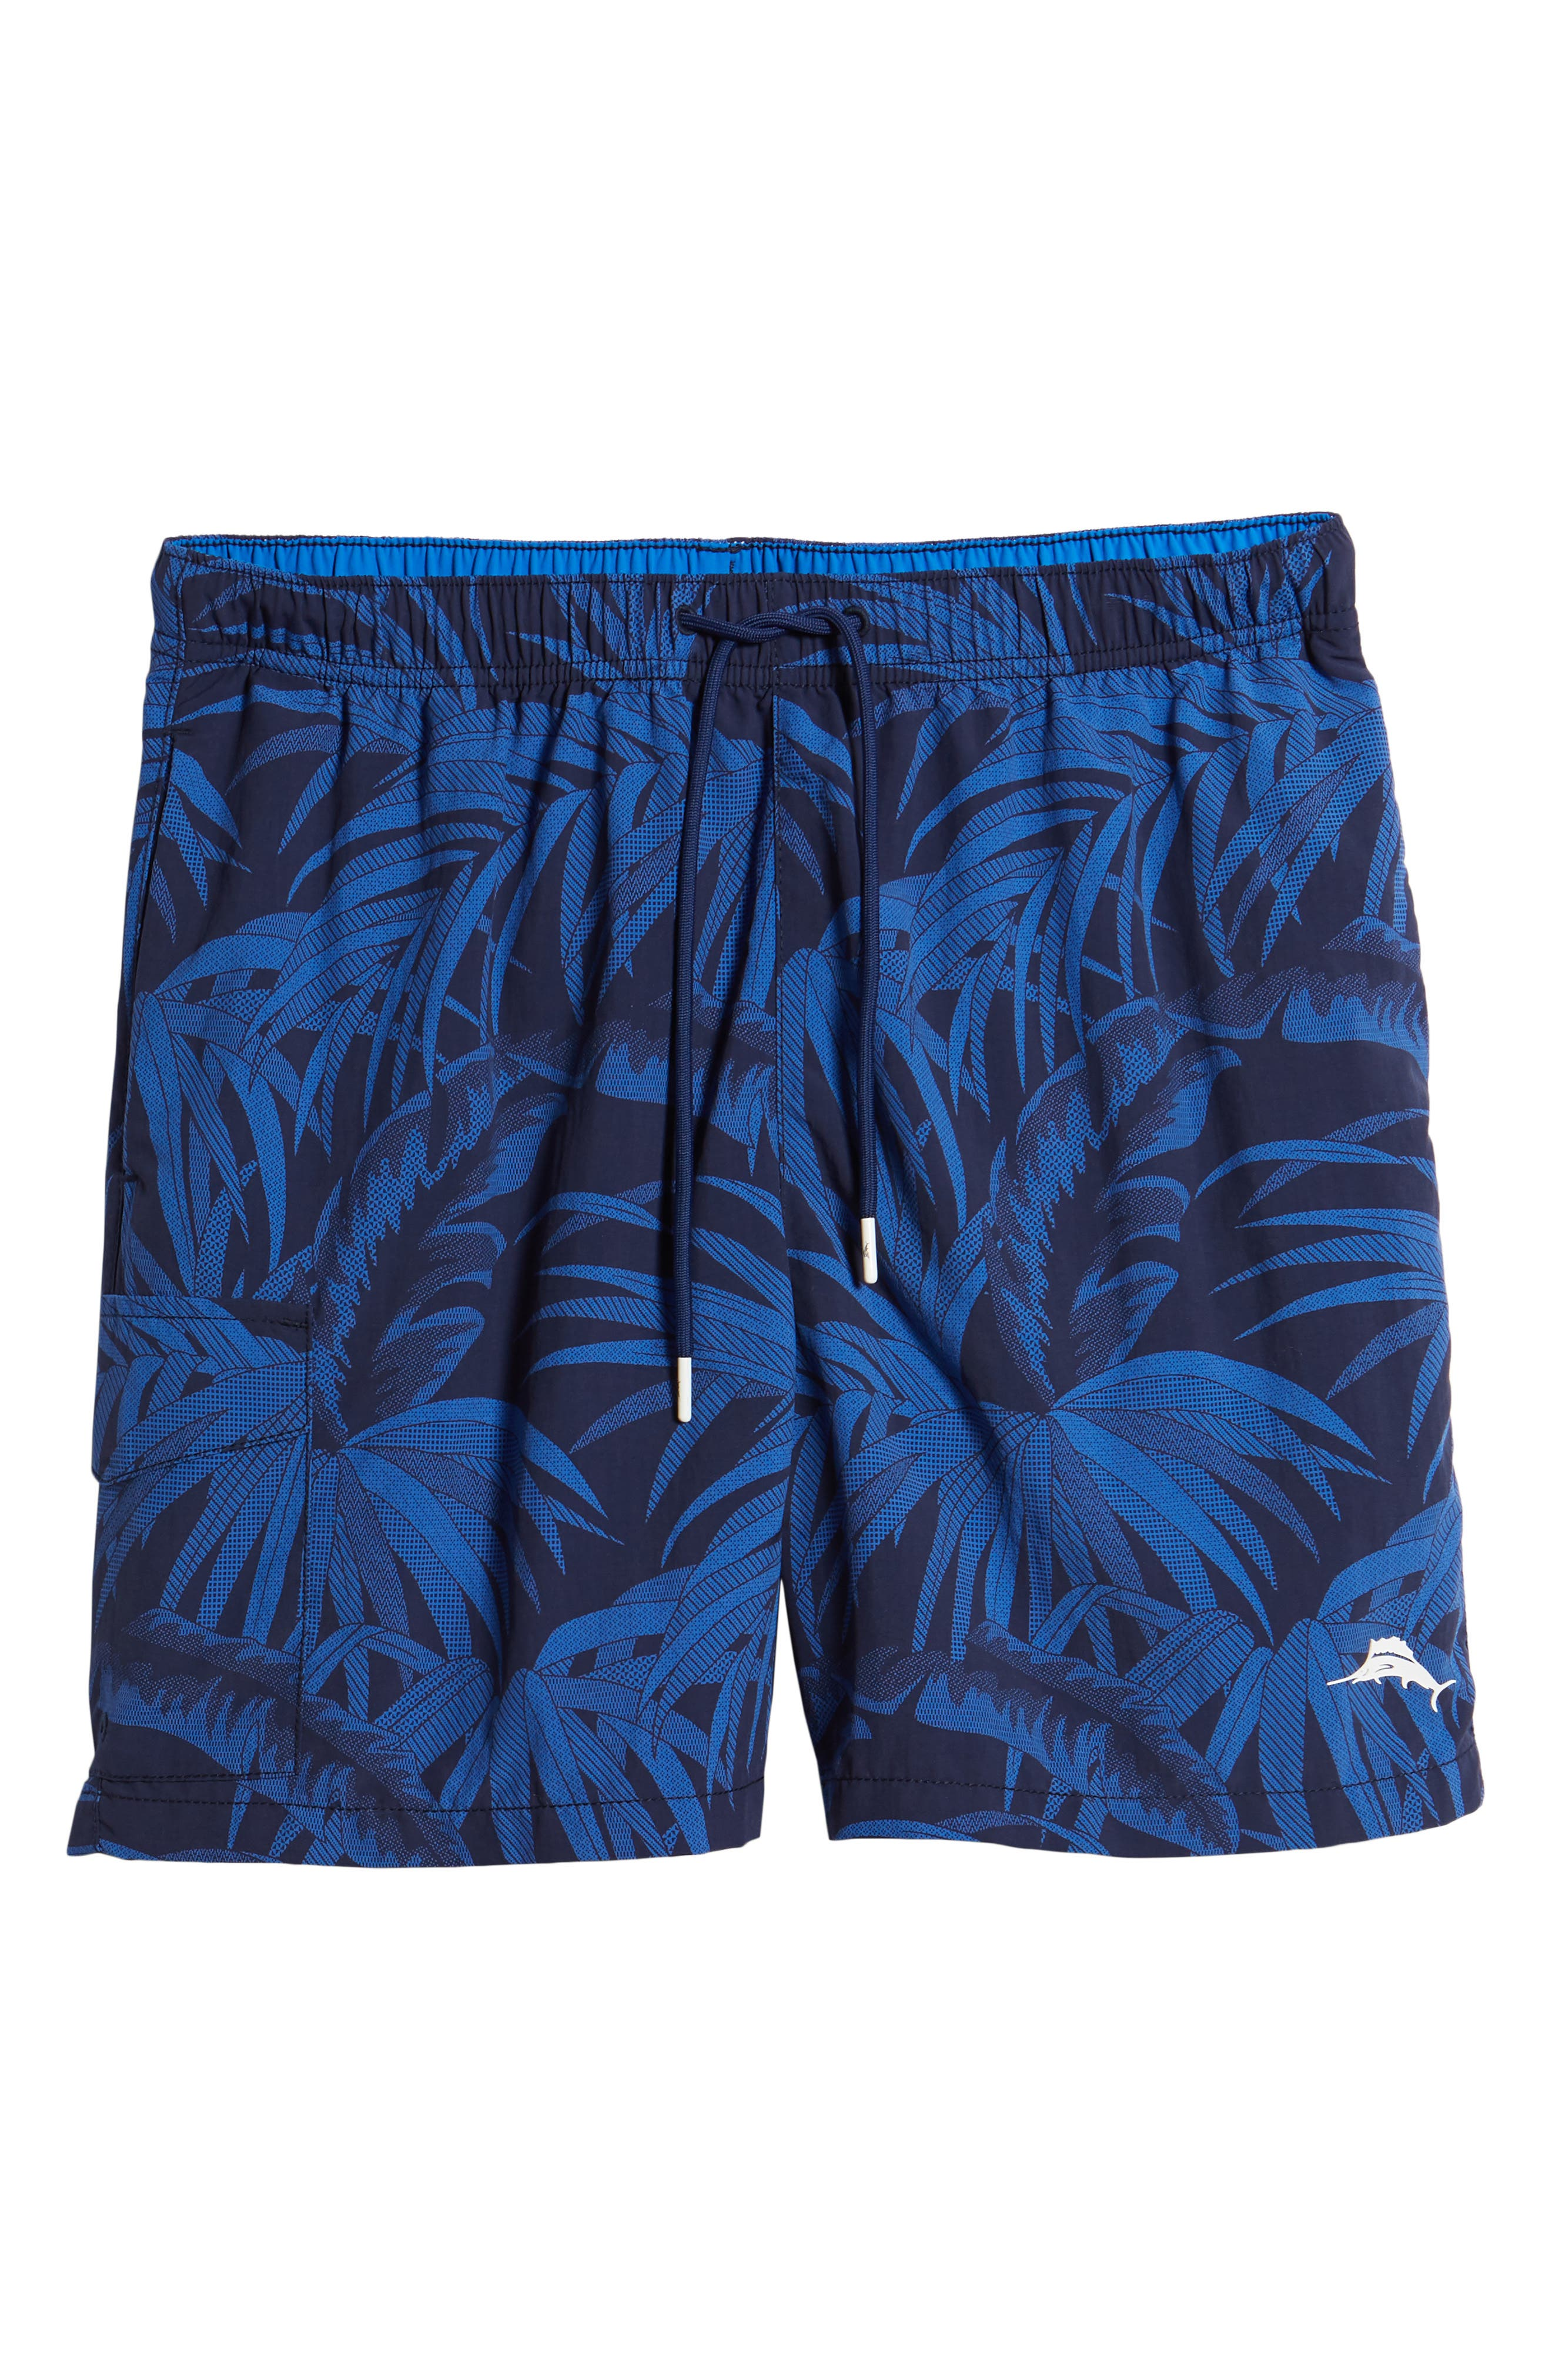 Naples Midnight Flora Swim Trunks,                             Alternate thumbnail 6, color,                             400